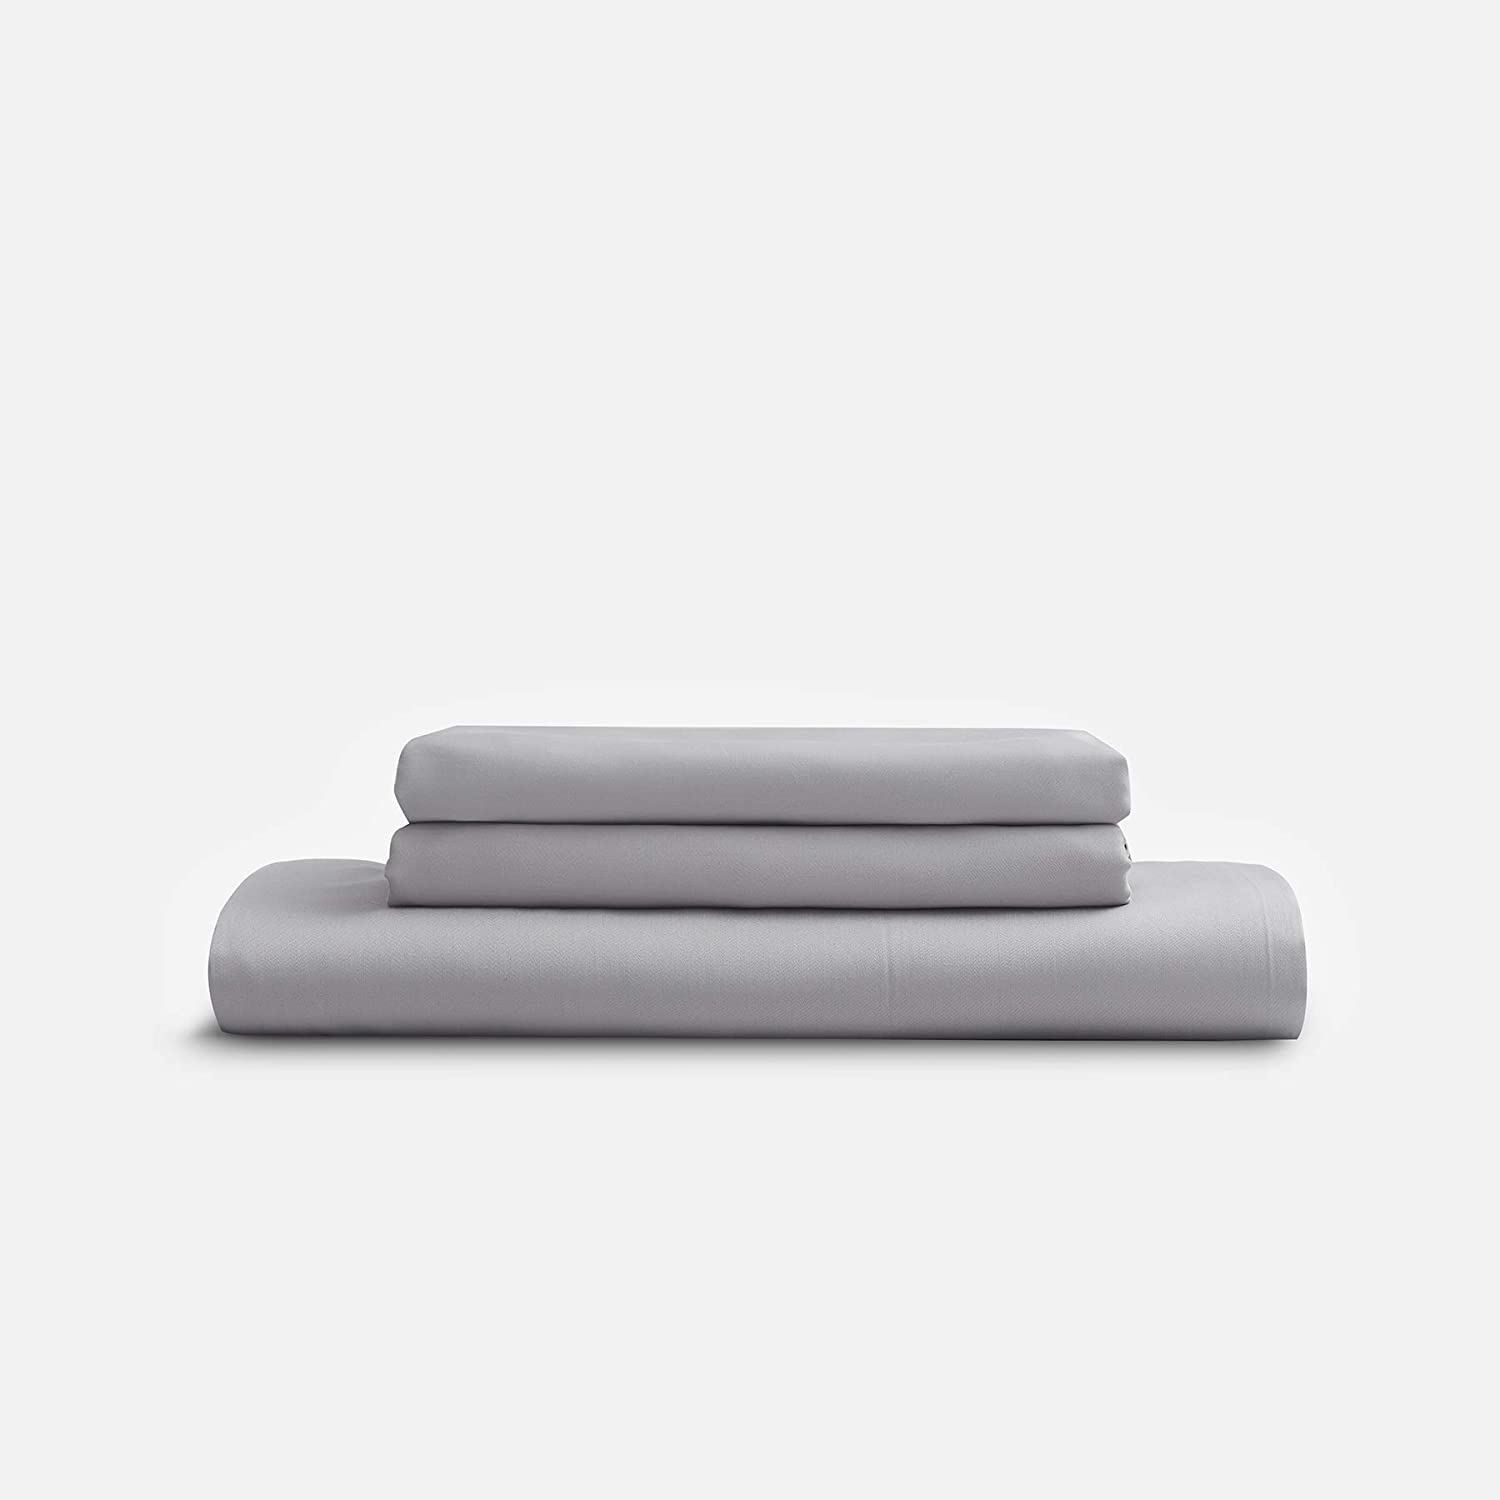 Sijo Premium 100% Bamboo Lyocell Bed Sheet Set 3 Piece, 2 Pillowcases, 1 Fitted, 3rd Gen Bamboo Sheets, Cooling Sheets, Moisture Wicking, Great for Hot Sleepers (Dove, Queen - Minimal 3 Piece)